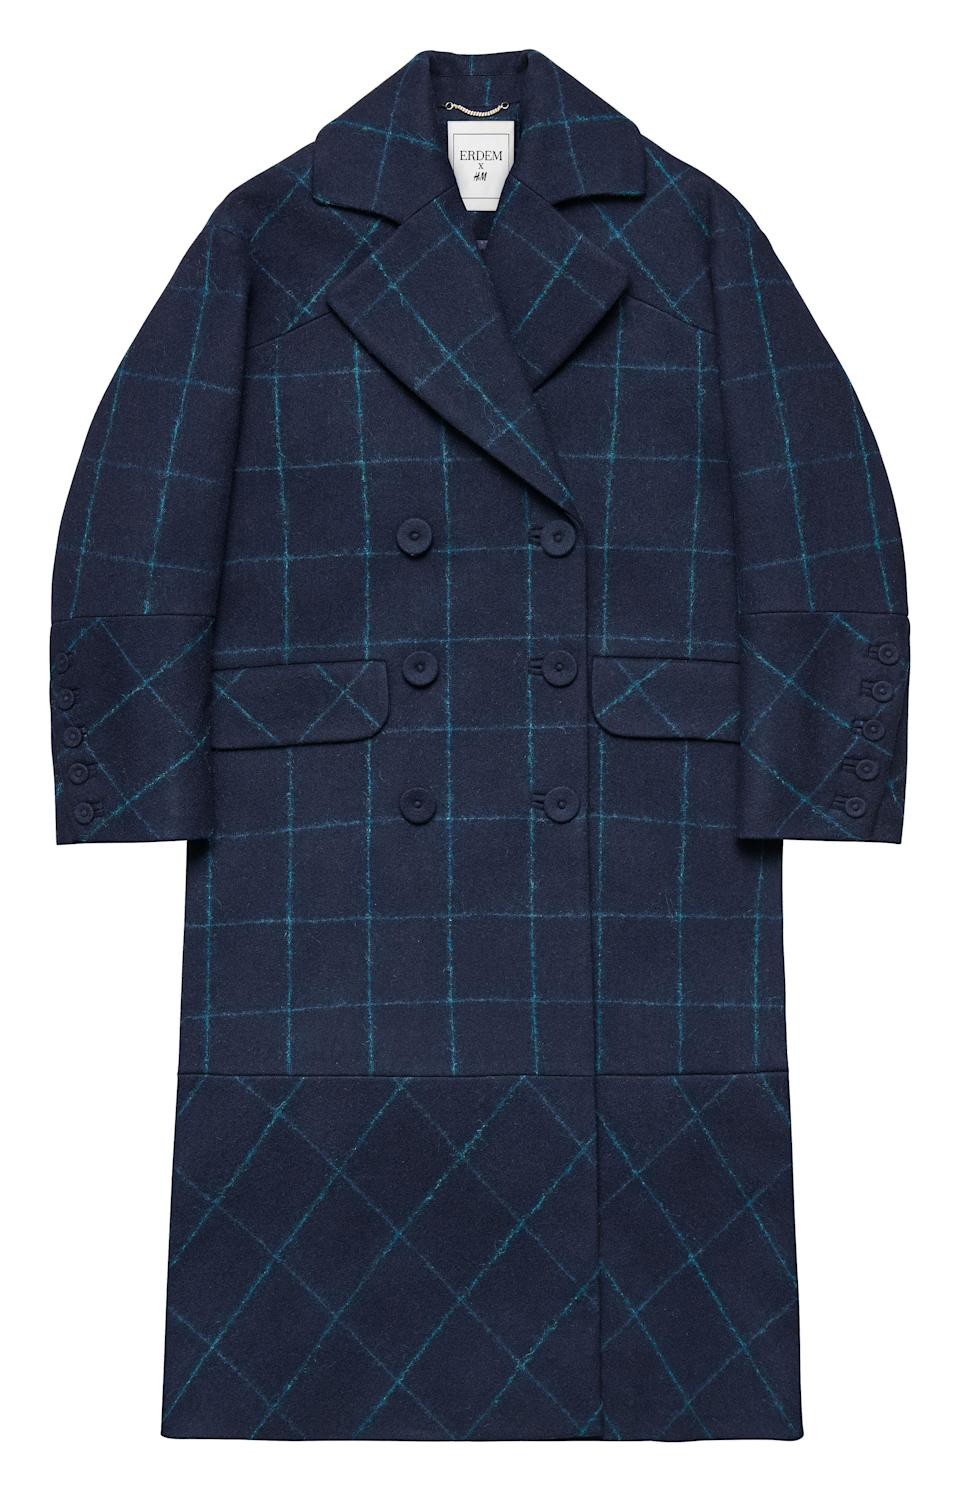 """<p>Checks are major news this season so what better way to celebrate than to invest in Erdem's navy offering? <em><a rel=""""nofollow noopener"""" href=""""http://www2.hm.com/en_gb/index.html"""" target=""""_blank"""" data-ylk=""""slk:H&M"""" class=""""link rapid-noclick-resp"""">H&M</a>, £149.99</em> </p>"""